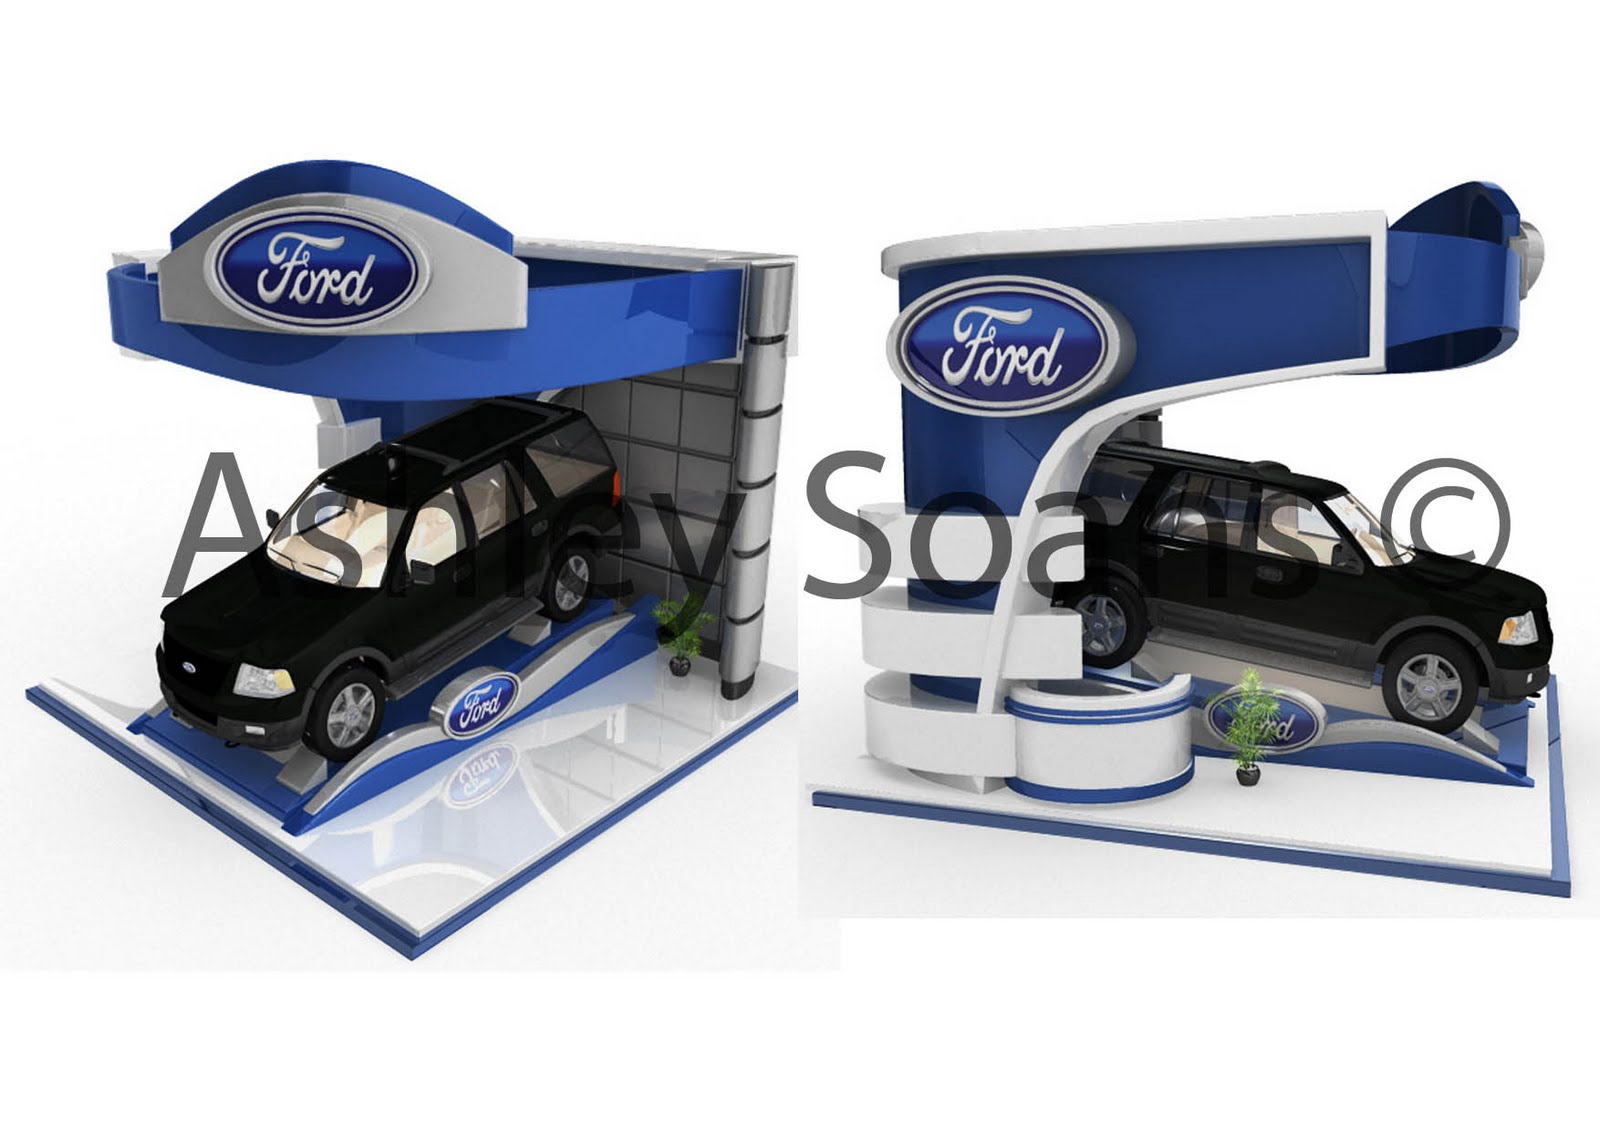 What Does Expo Stands For : As arts exhibition stand for ford